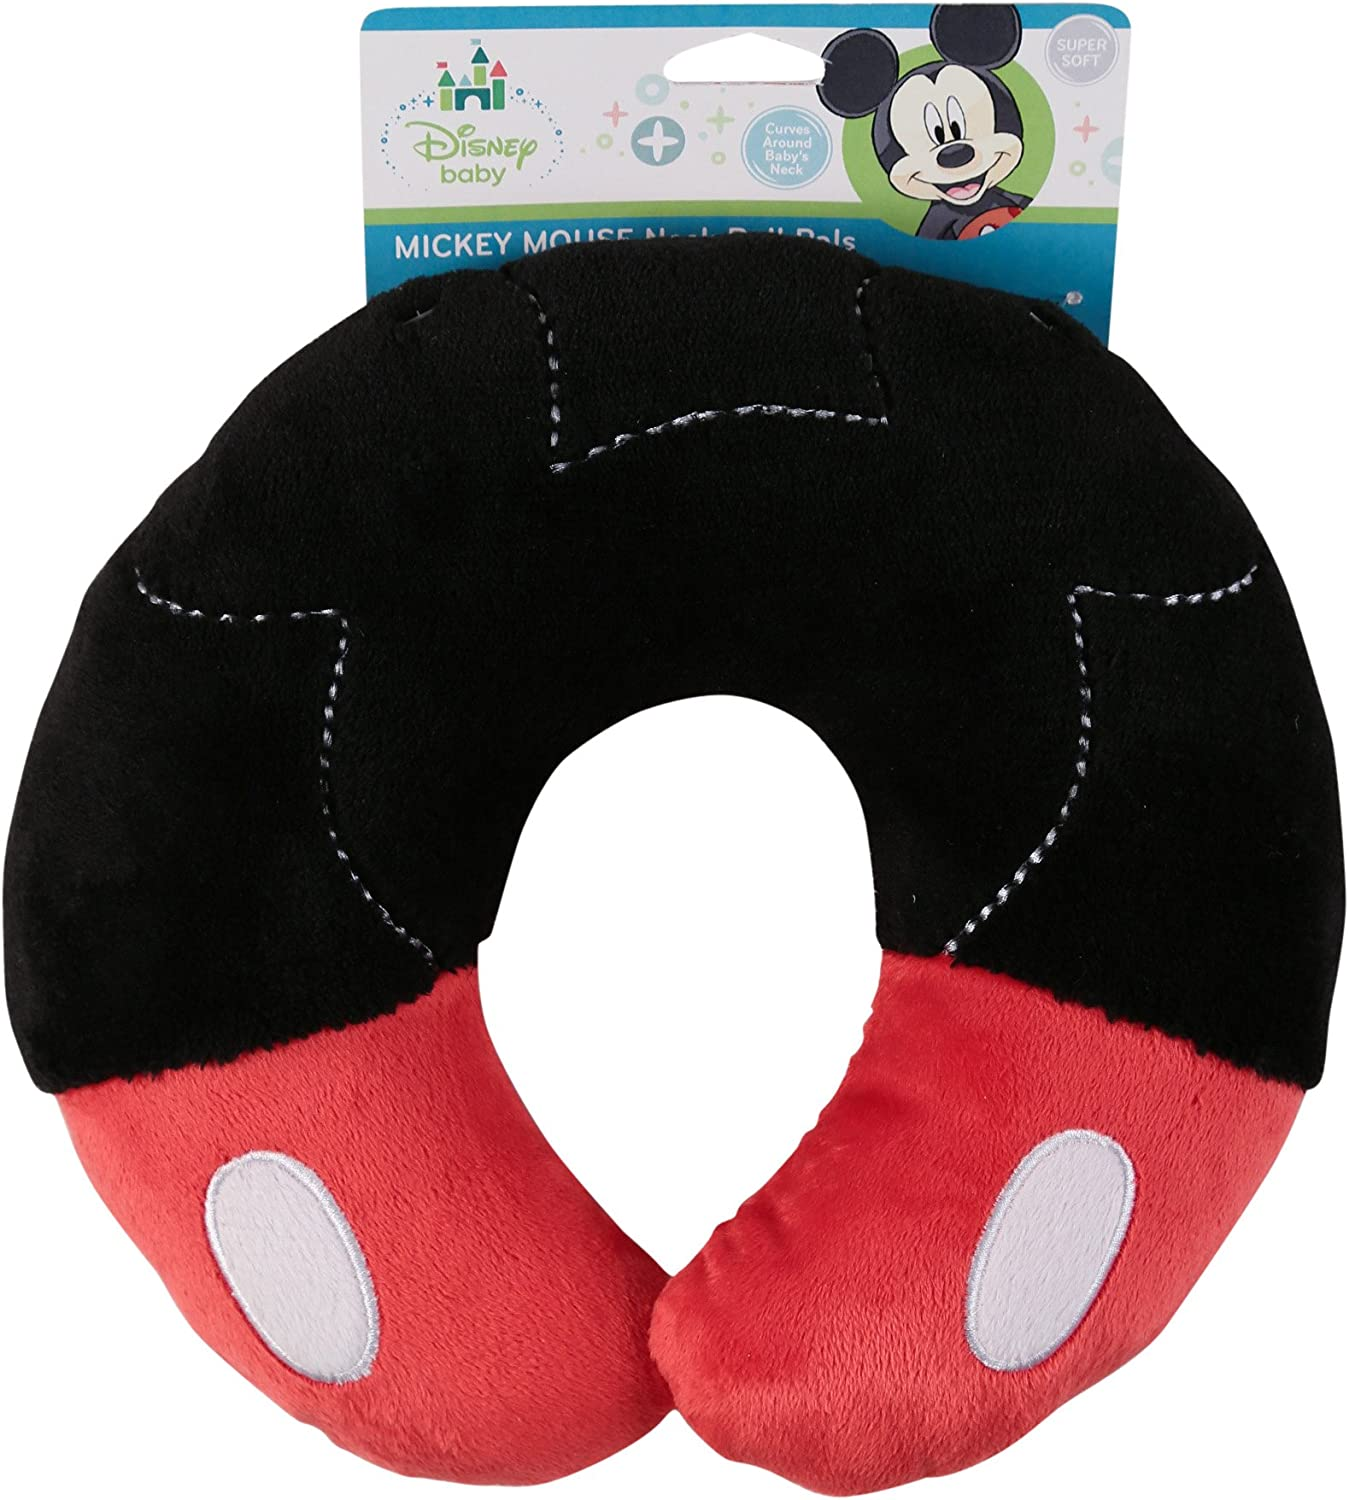 Disney Mickey Mouse Neck Roll Pals with Embroidery, Red Black